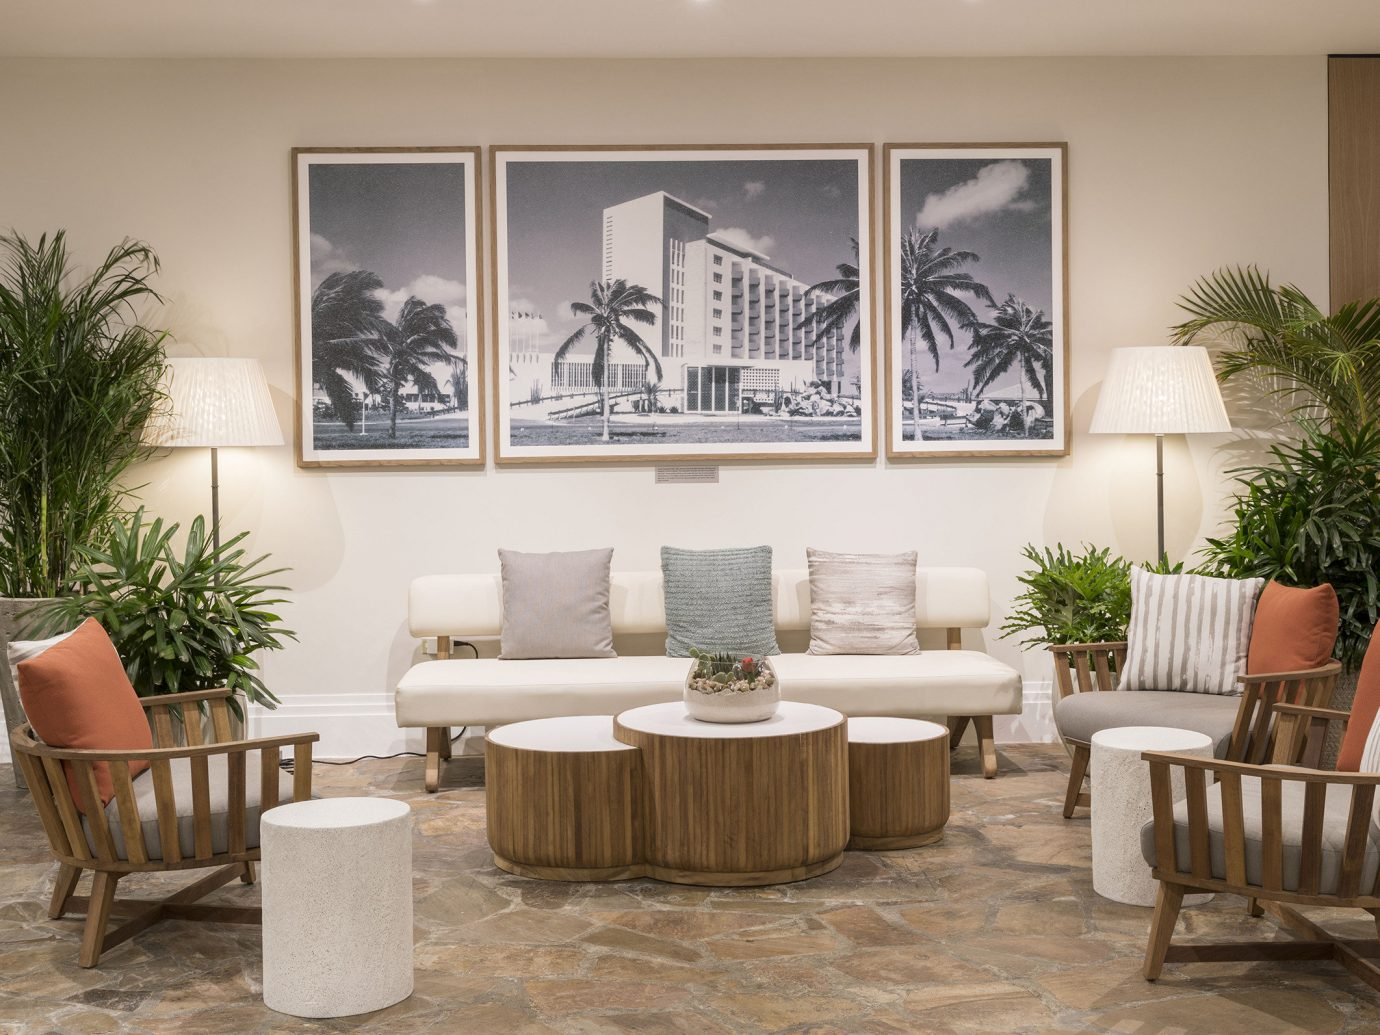 Aruba caribbean Hotels floor Living wall room indoor living room dining room chair property ceiling furniture home interior design plant table estate wood Design window covering area Lobby decorated dining table arranged